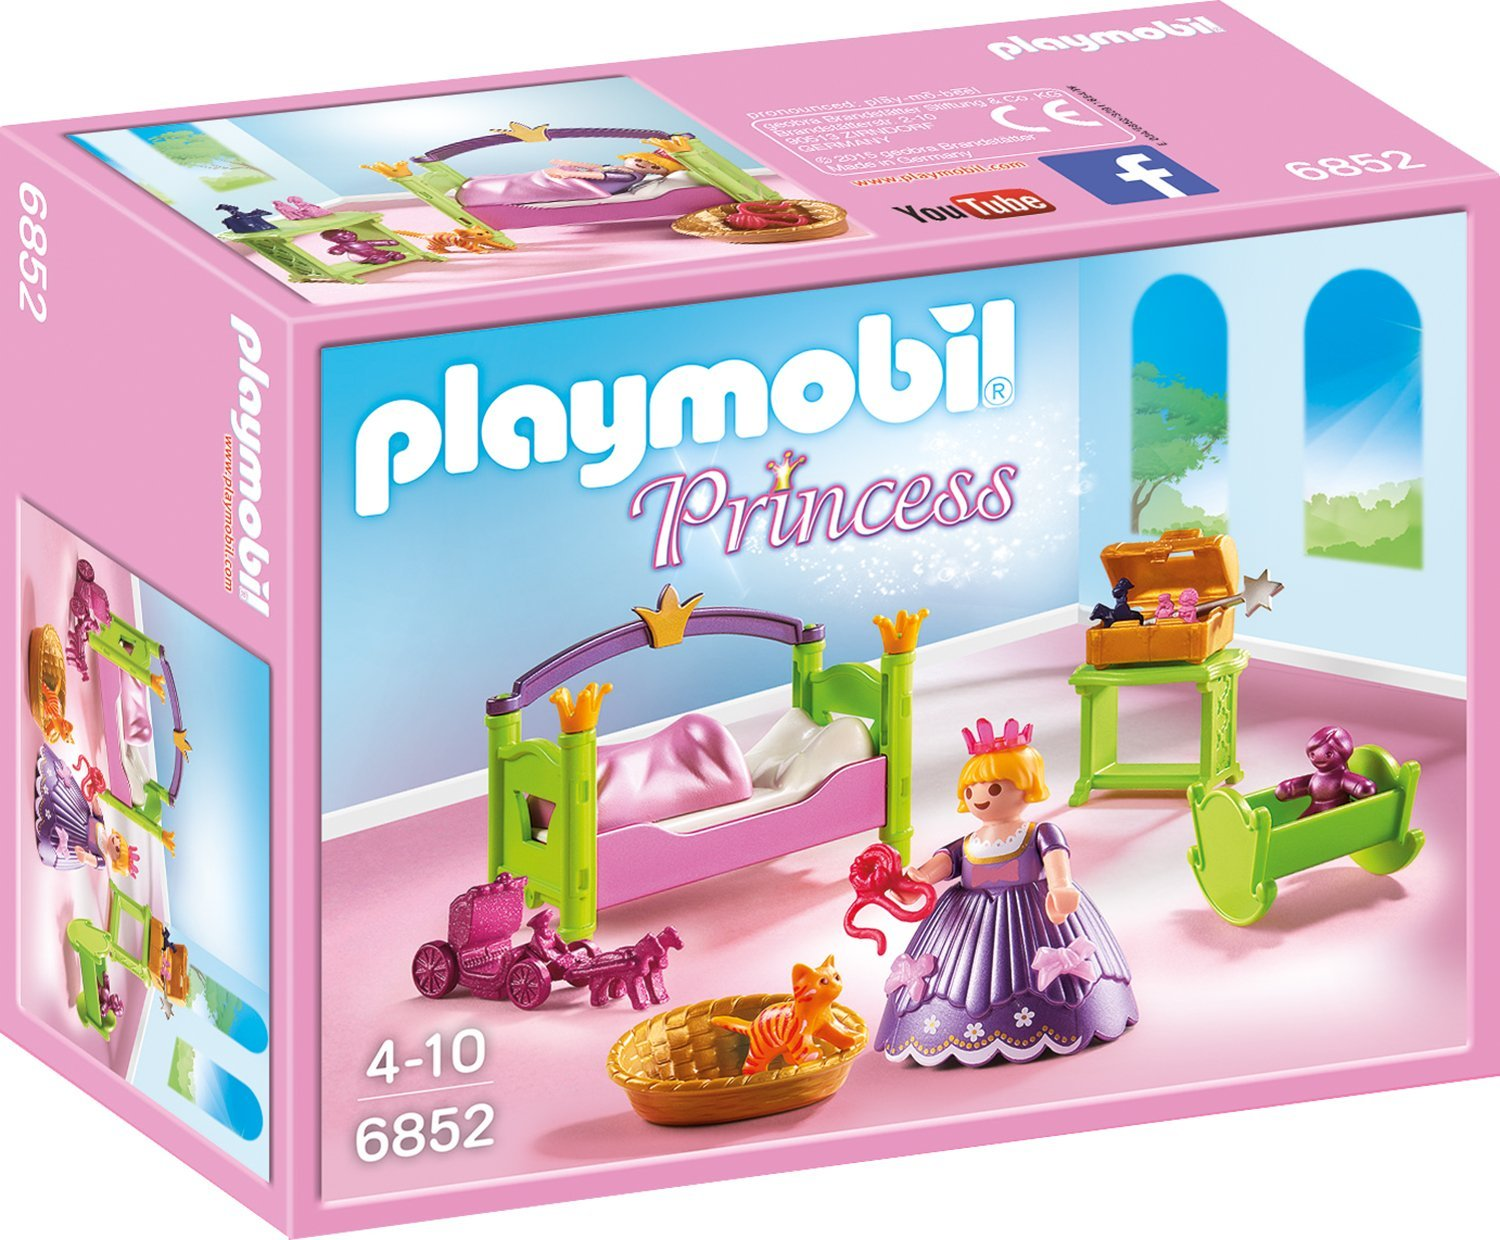 Amazon.de:Playmobil 6852 - Prinzessinnen-Kinderzimmer